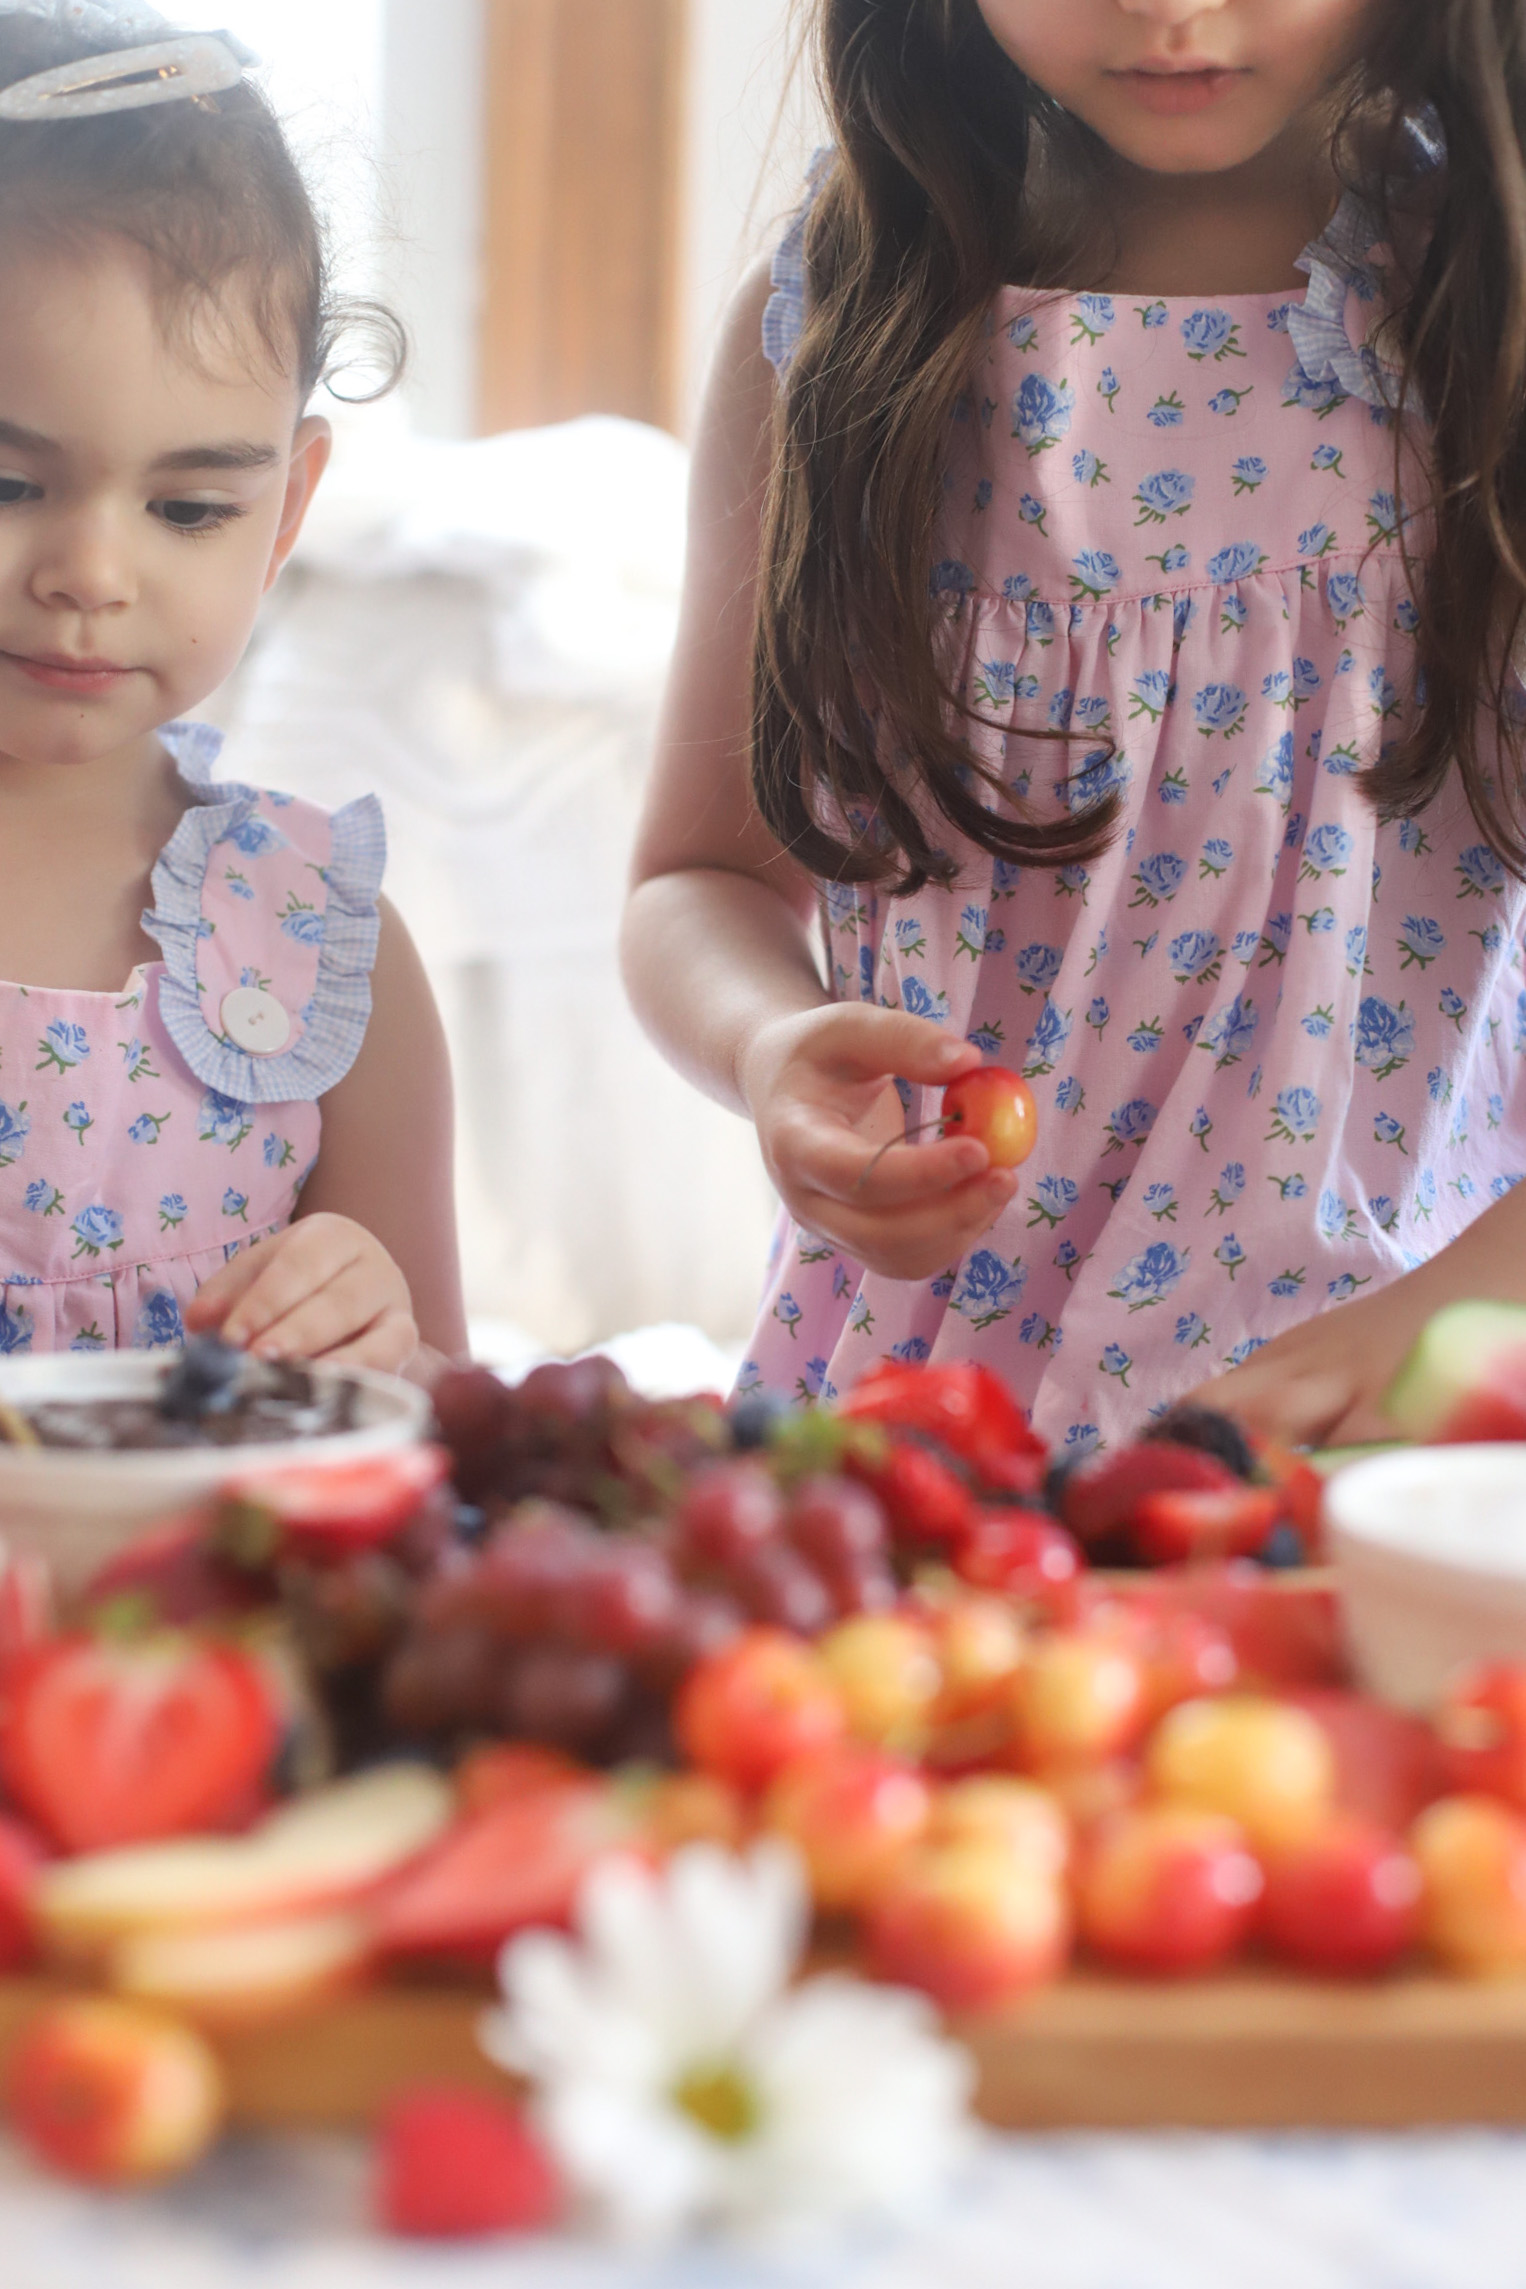 two kids eating from fruit dessert board with chocolate dip